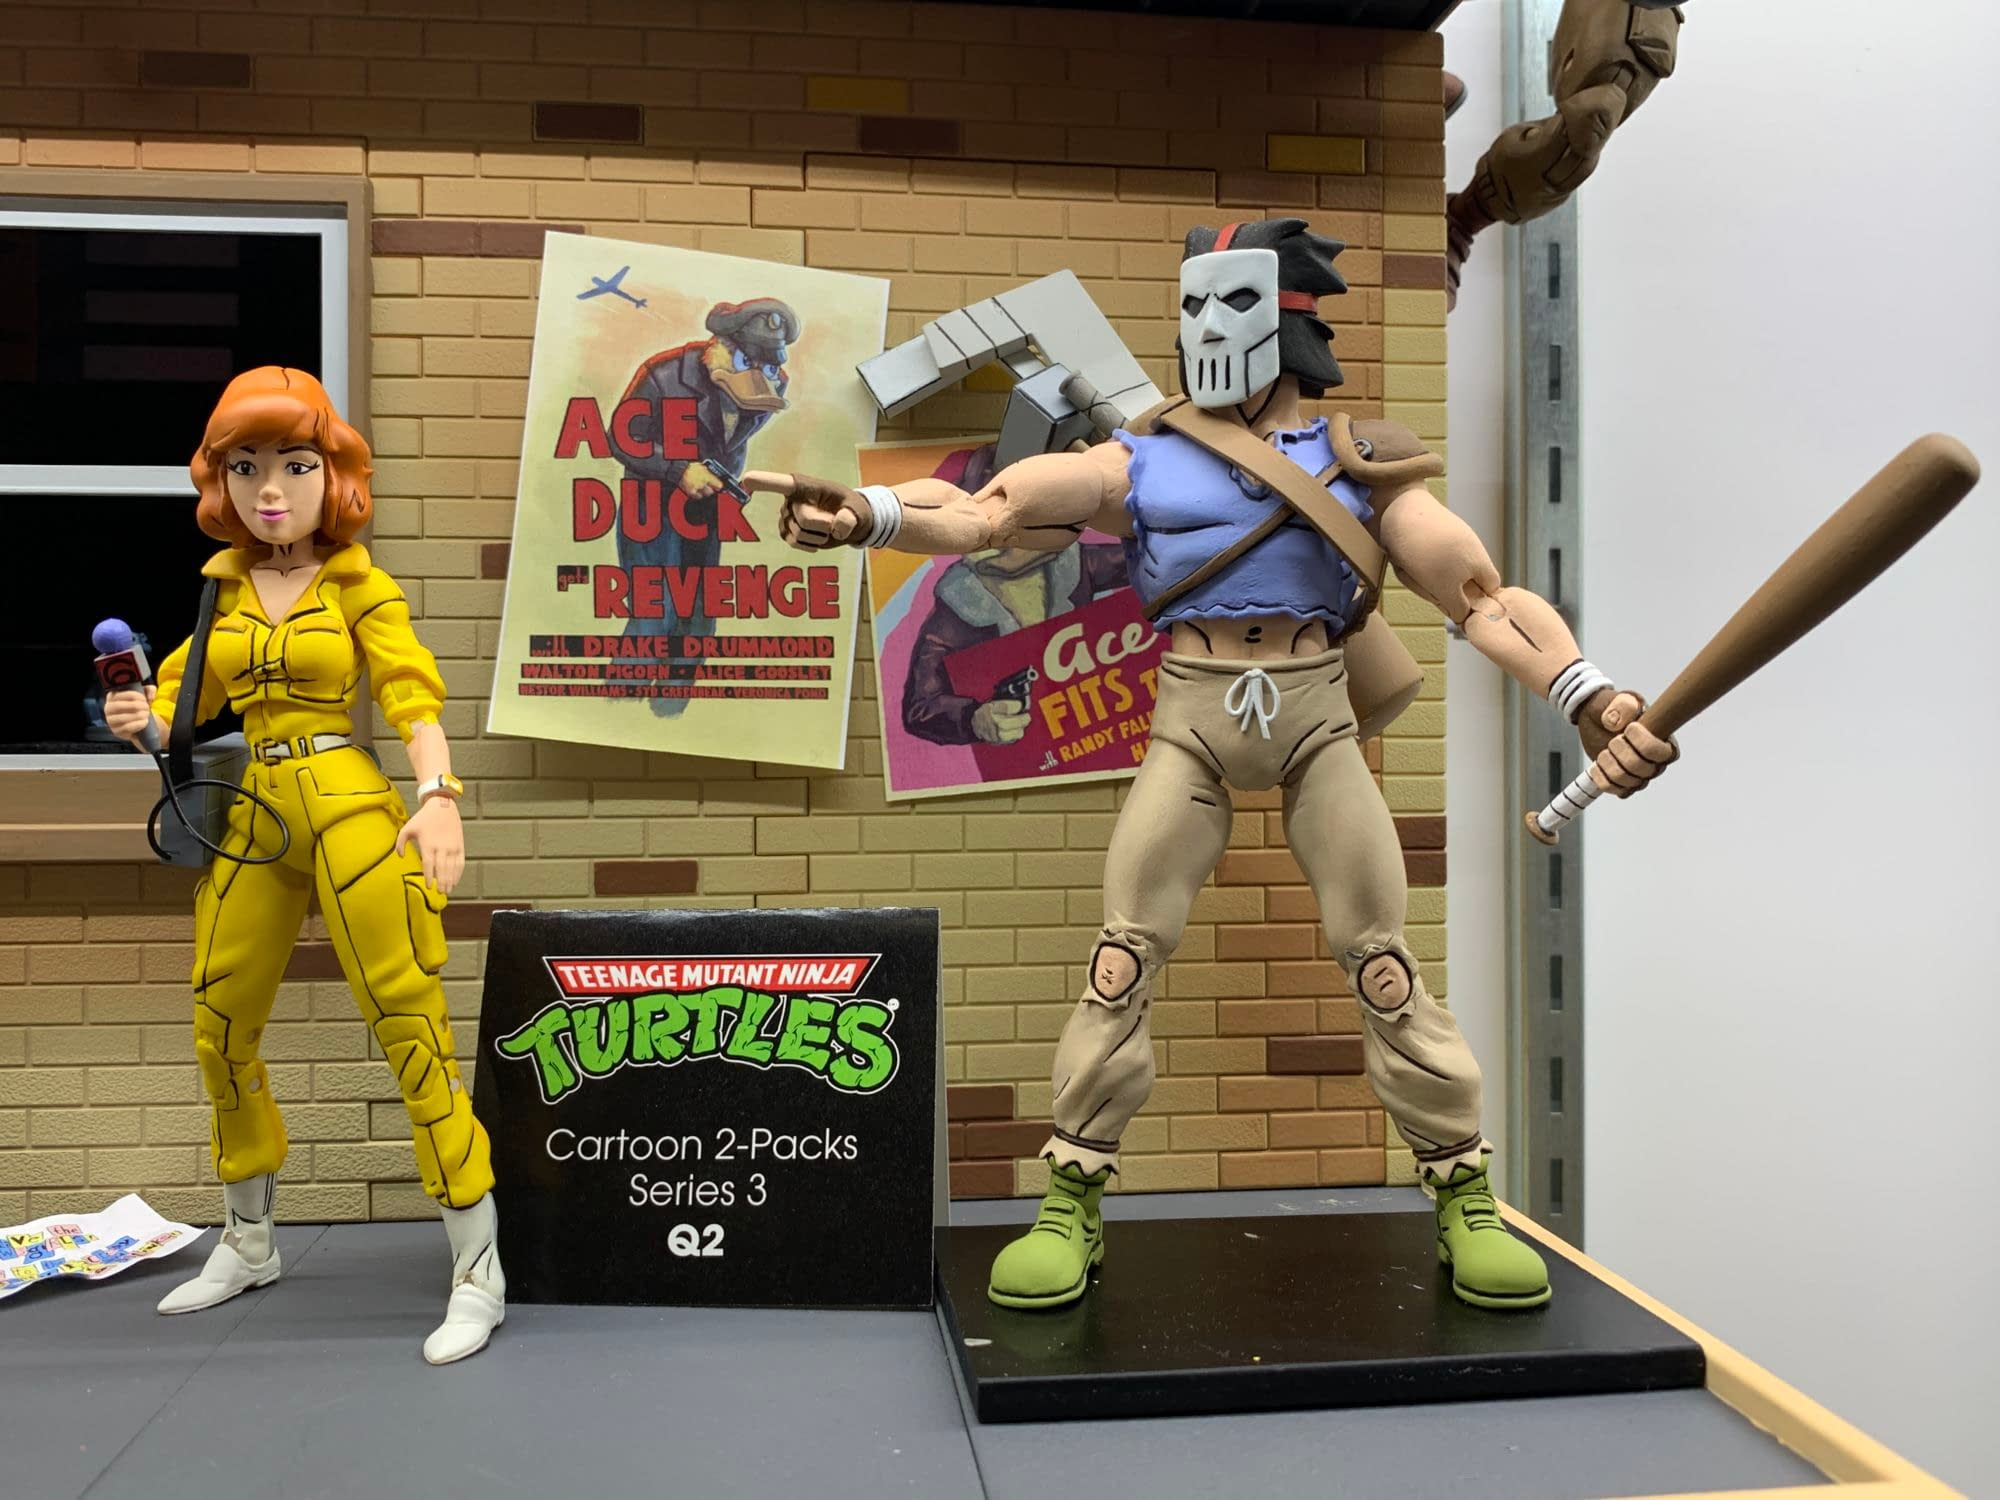 NECA New York Toy Fair 2020: TMNT and Horror Figures